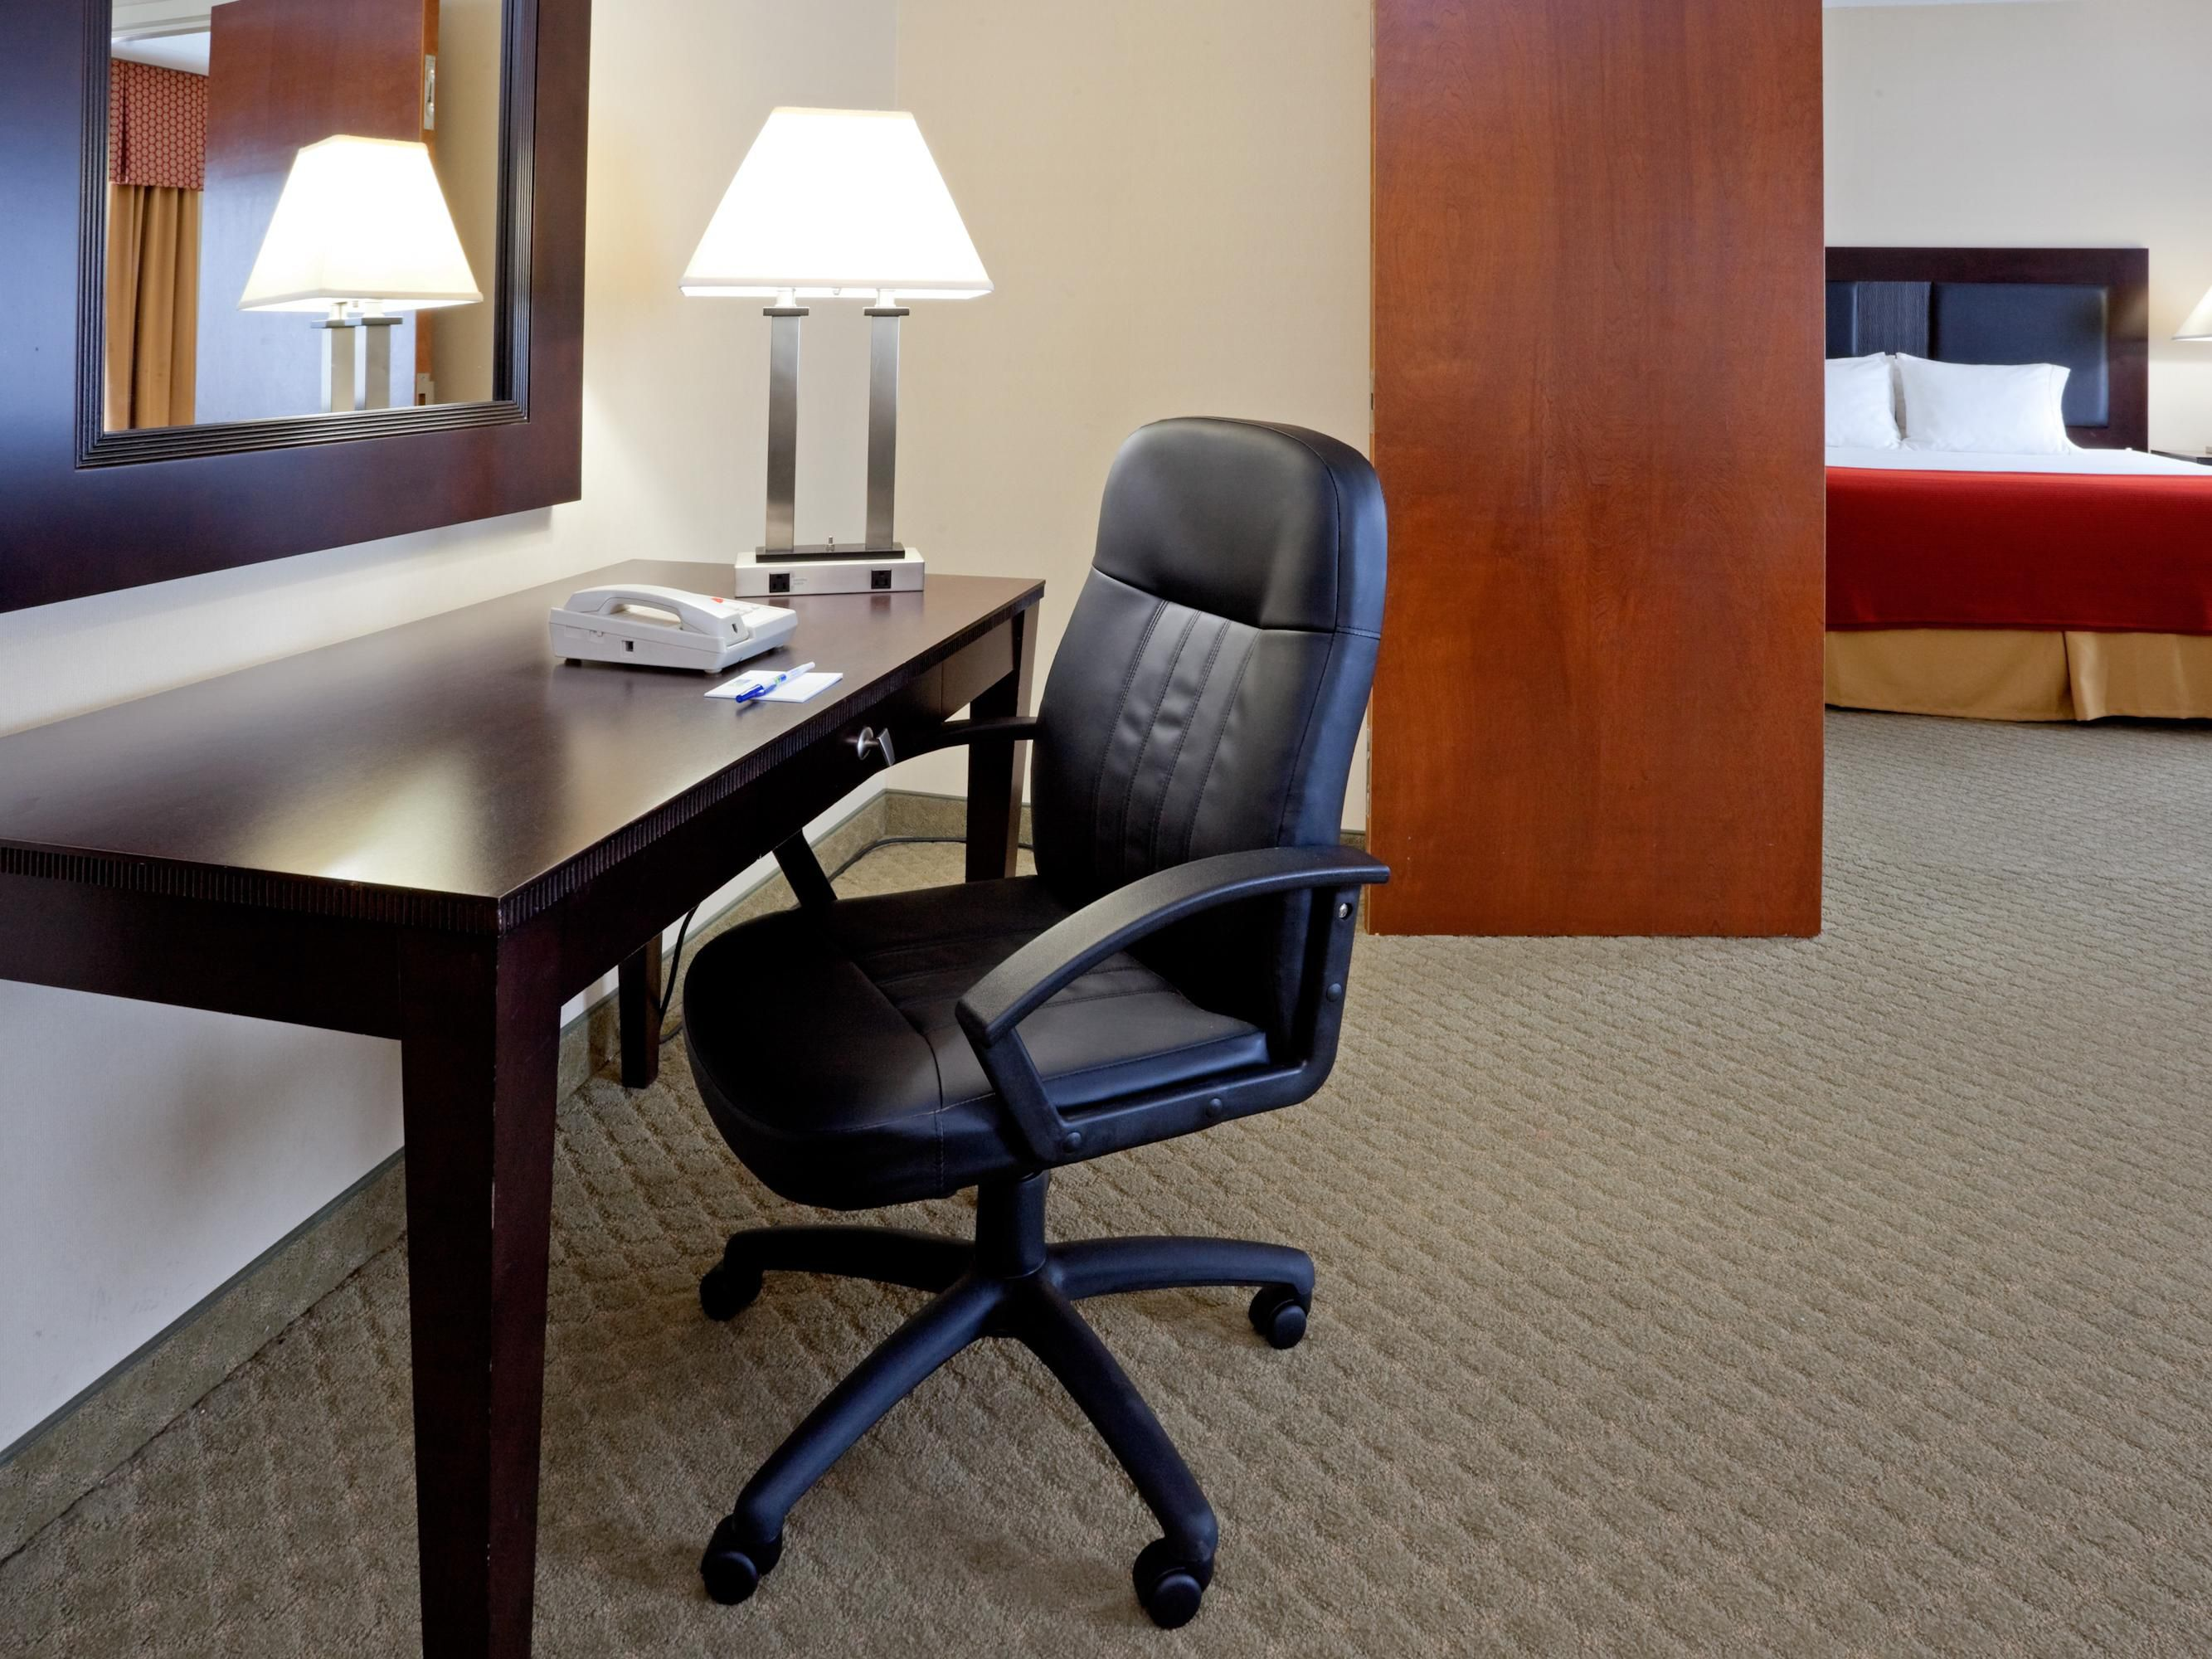 Executive Suite - from the desk